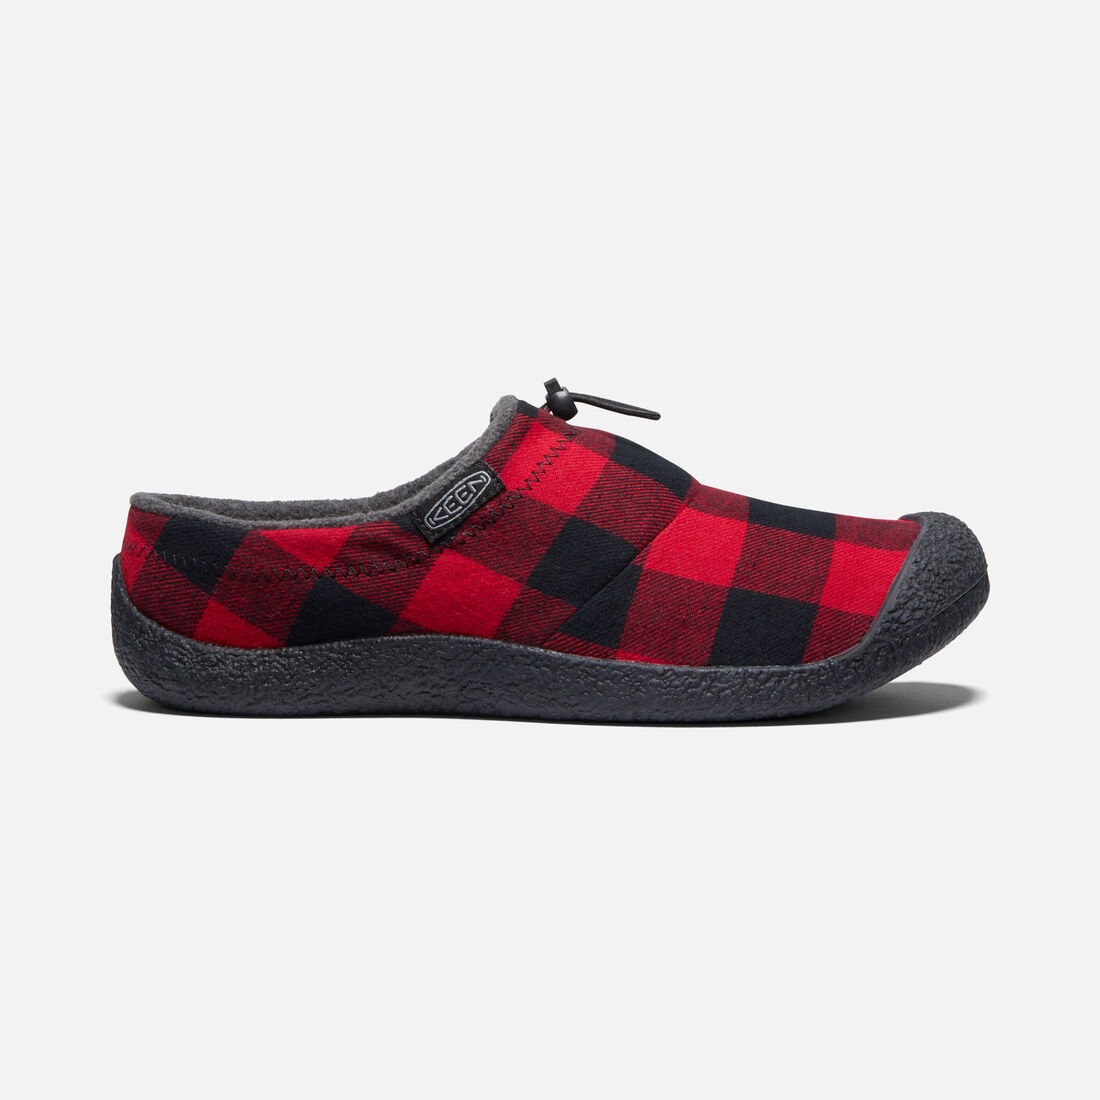 Men's Howser III Slide in Red Plaid/Black - large view.